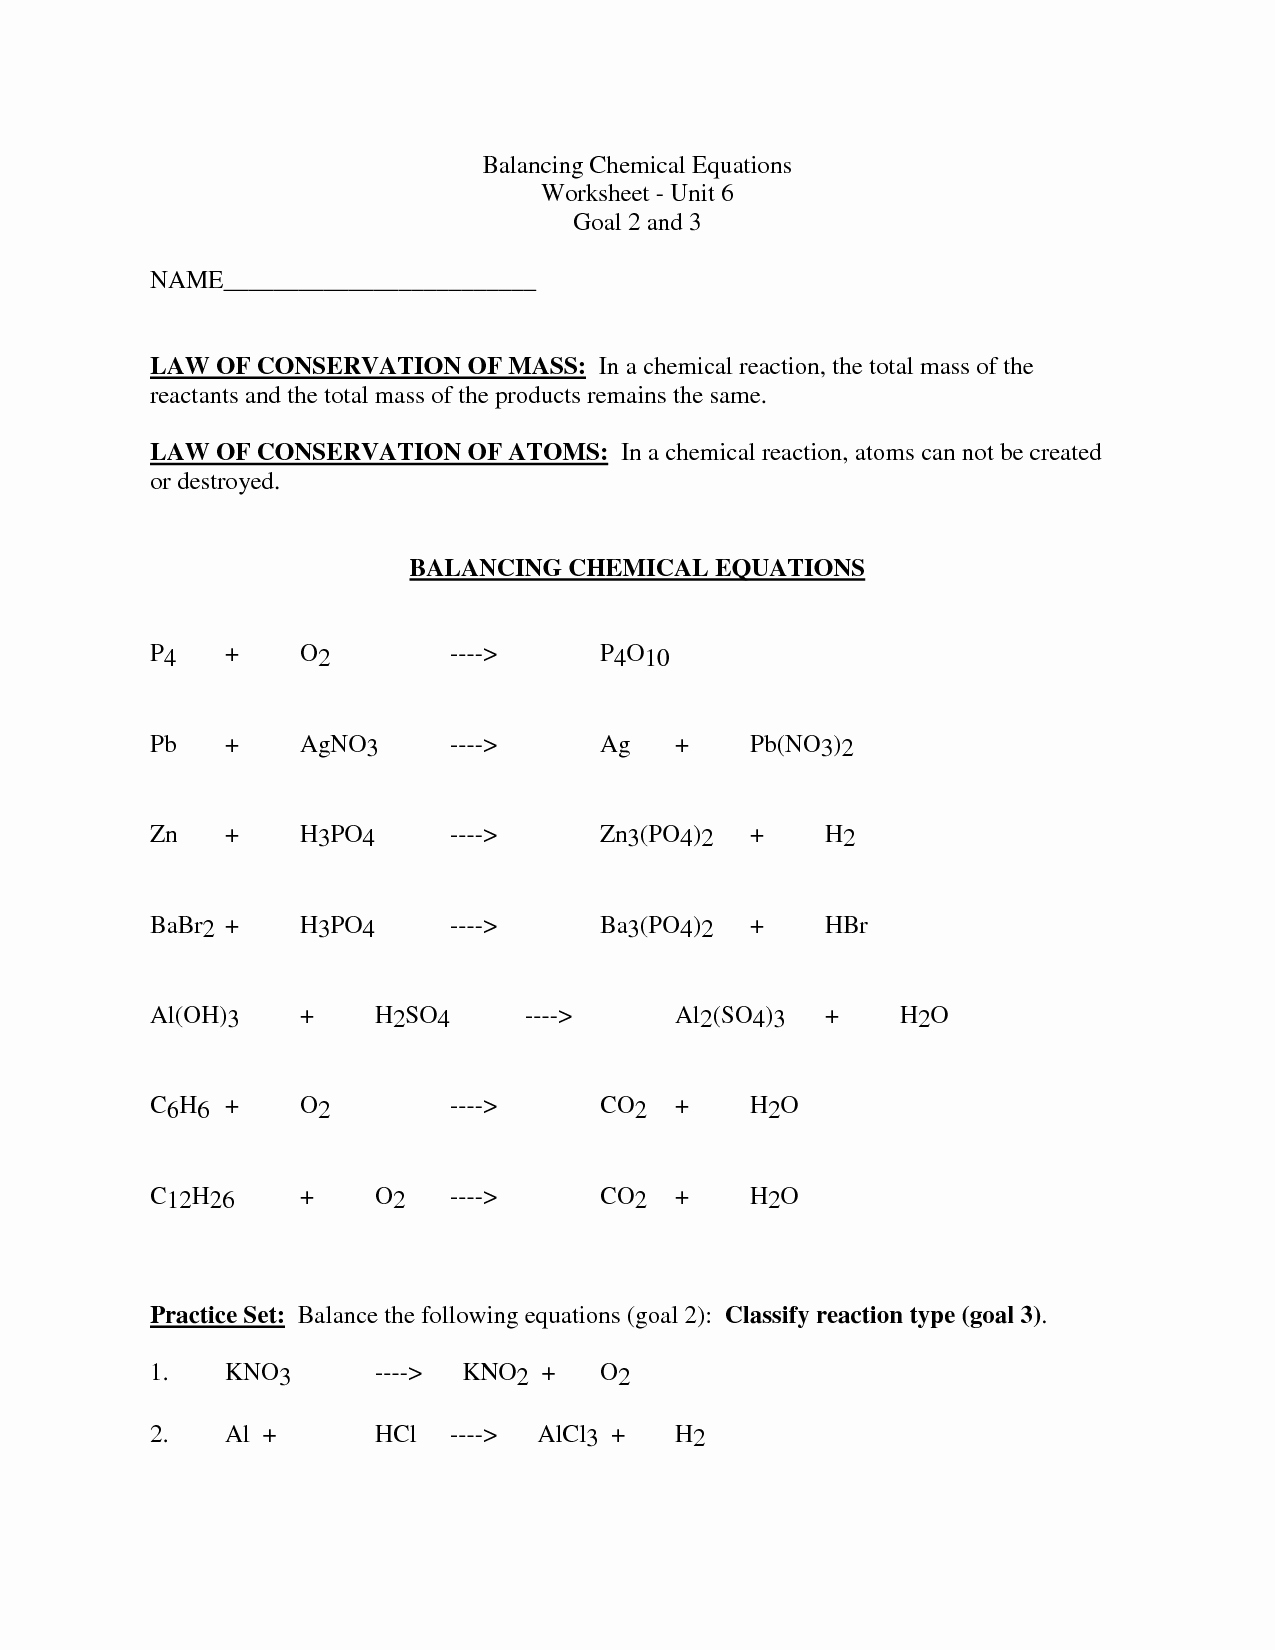 Balancing Equations Worksheet Answers Chemistry Inspirational 12 Best Of Balancing Chemical Equations Worksheet